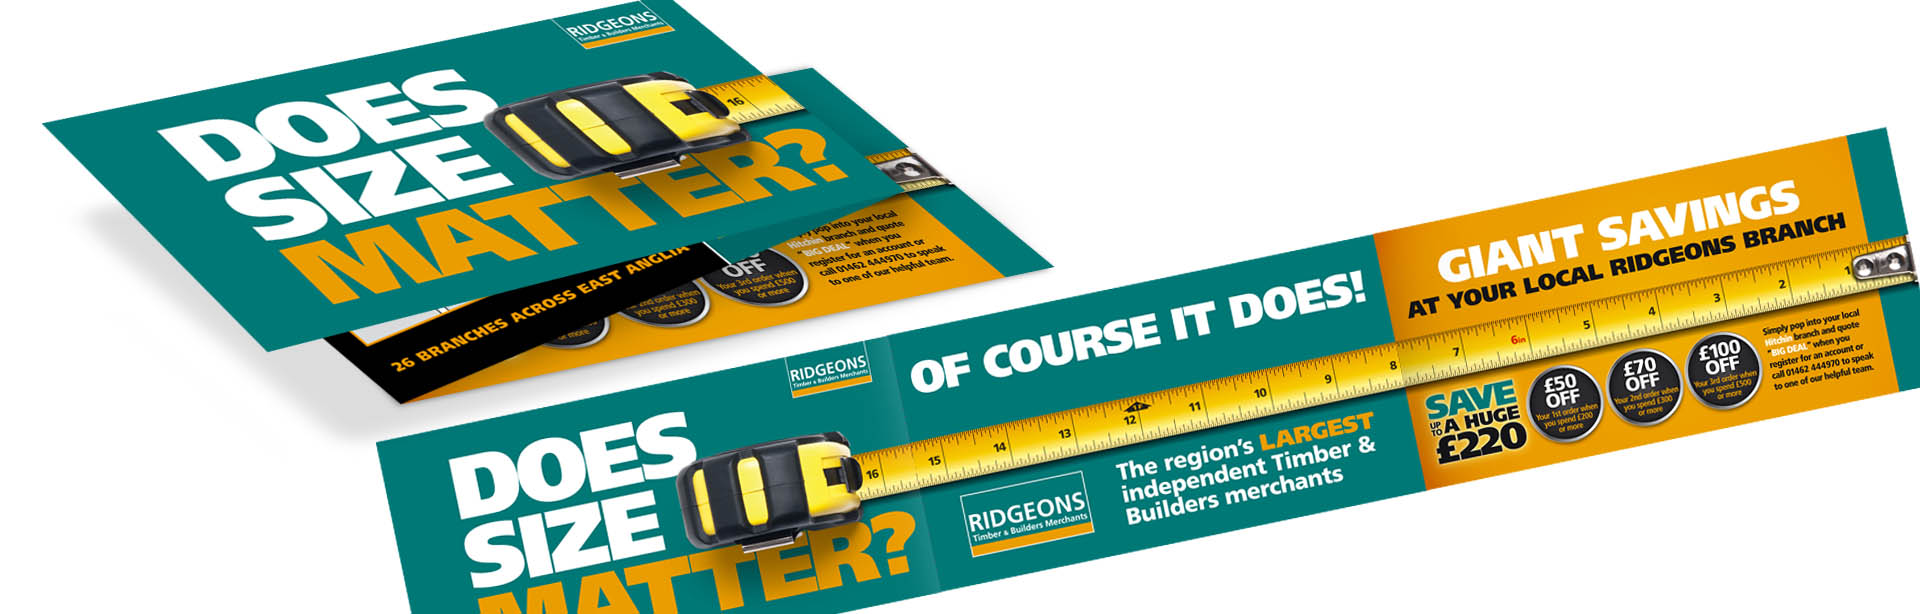 Direct mail design for Ridgeons builders merchants by The Finishing Post, Suffolk design agency